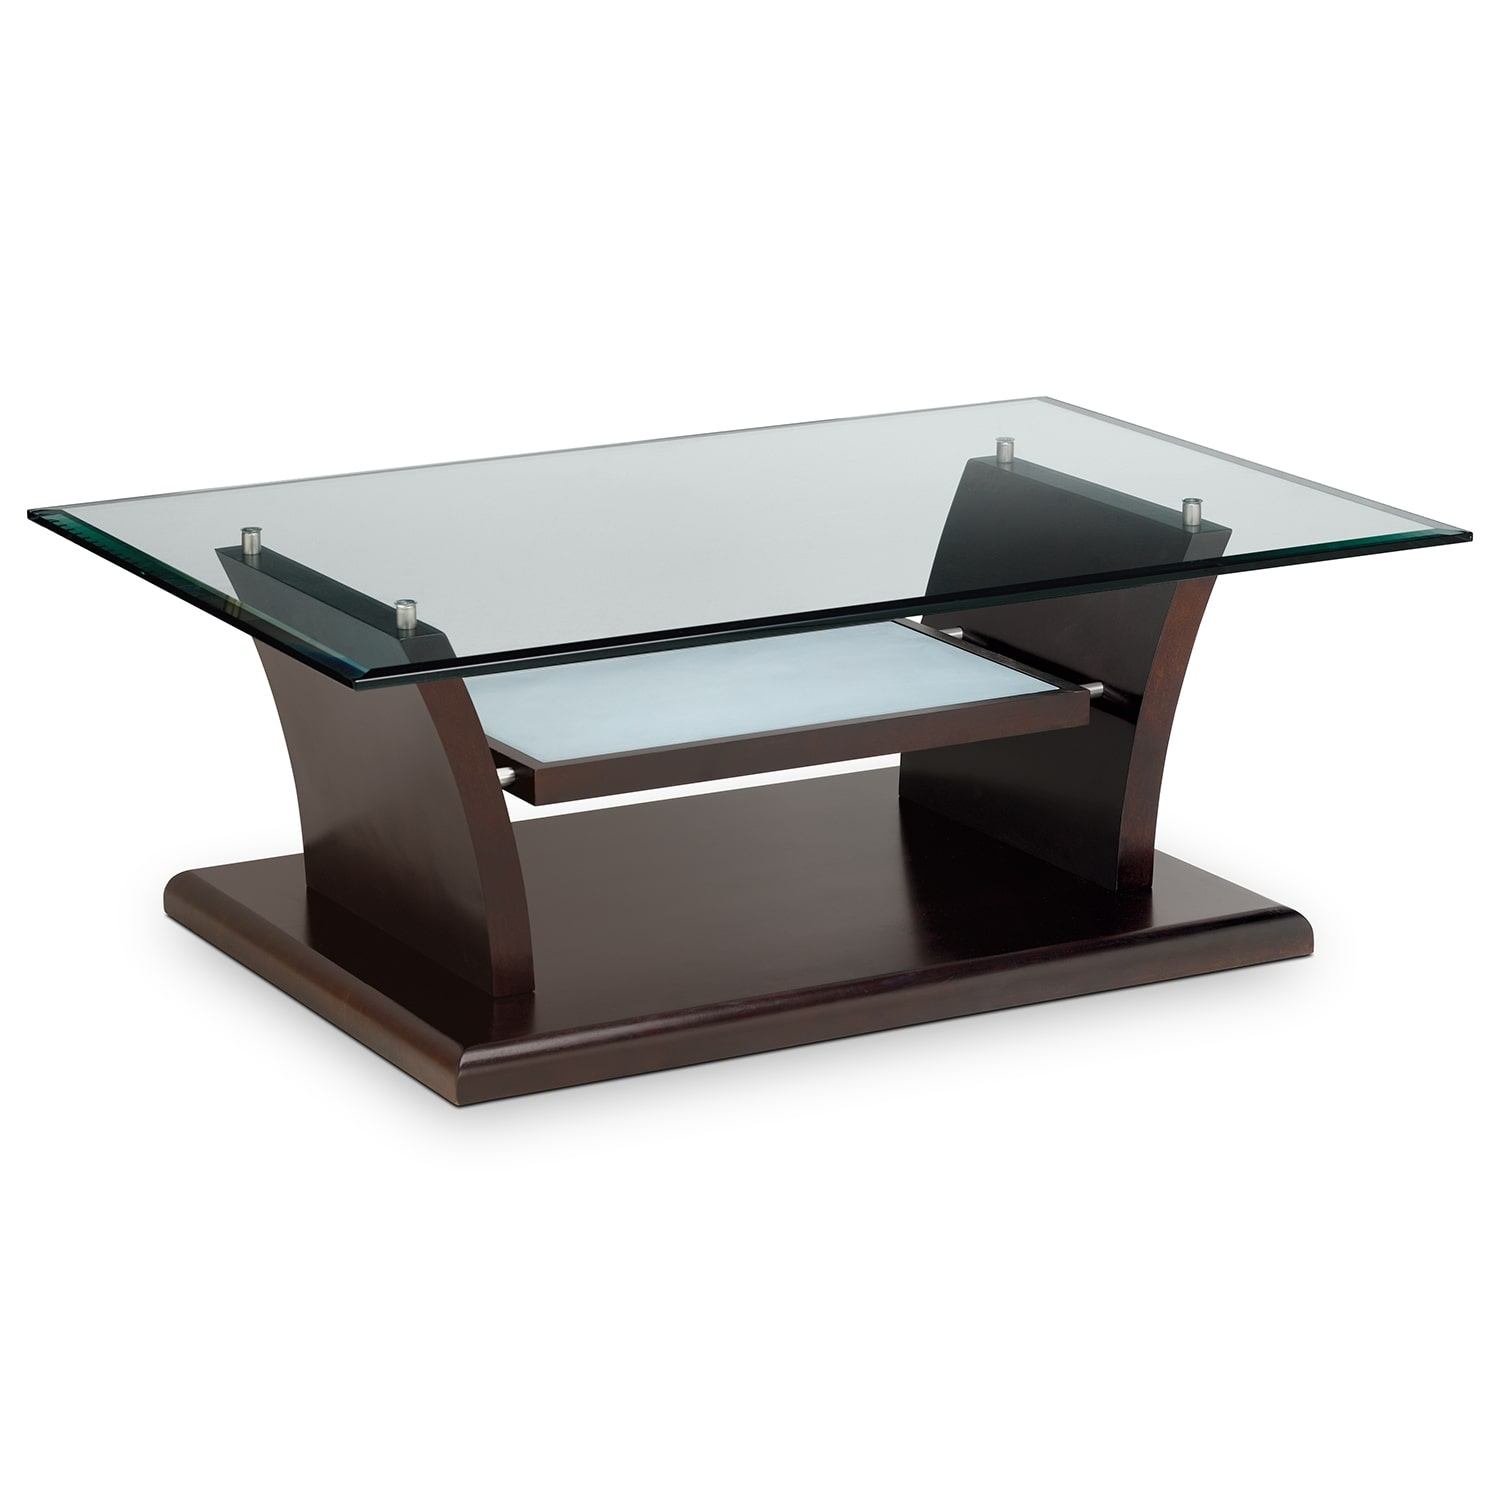 Bell aer cocktail table american signature furniture for Table furniture